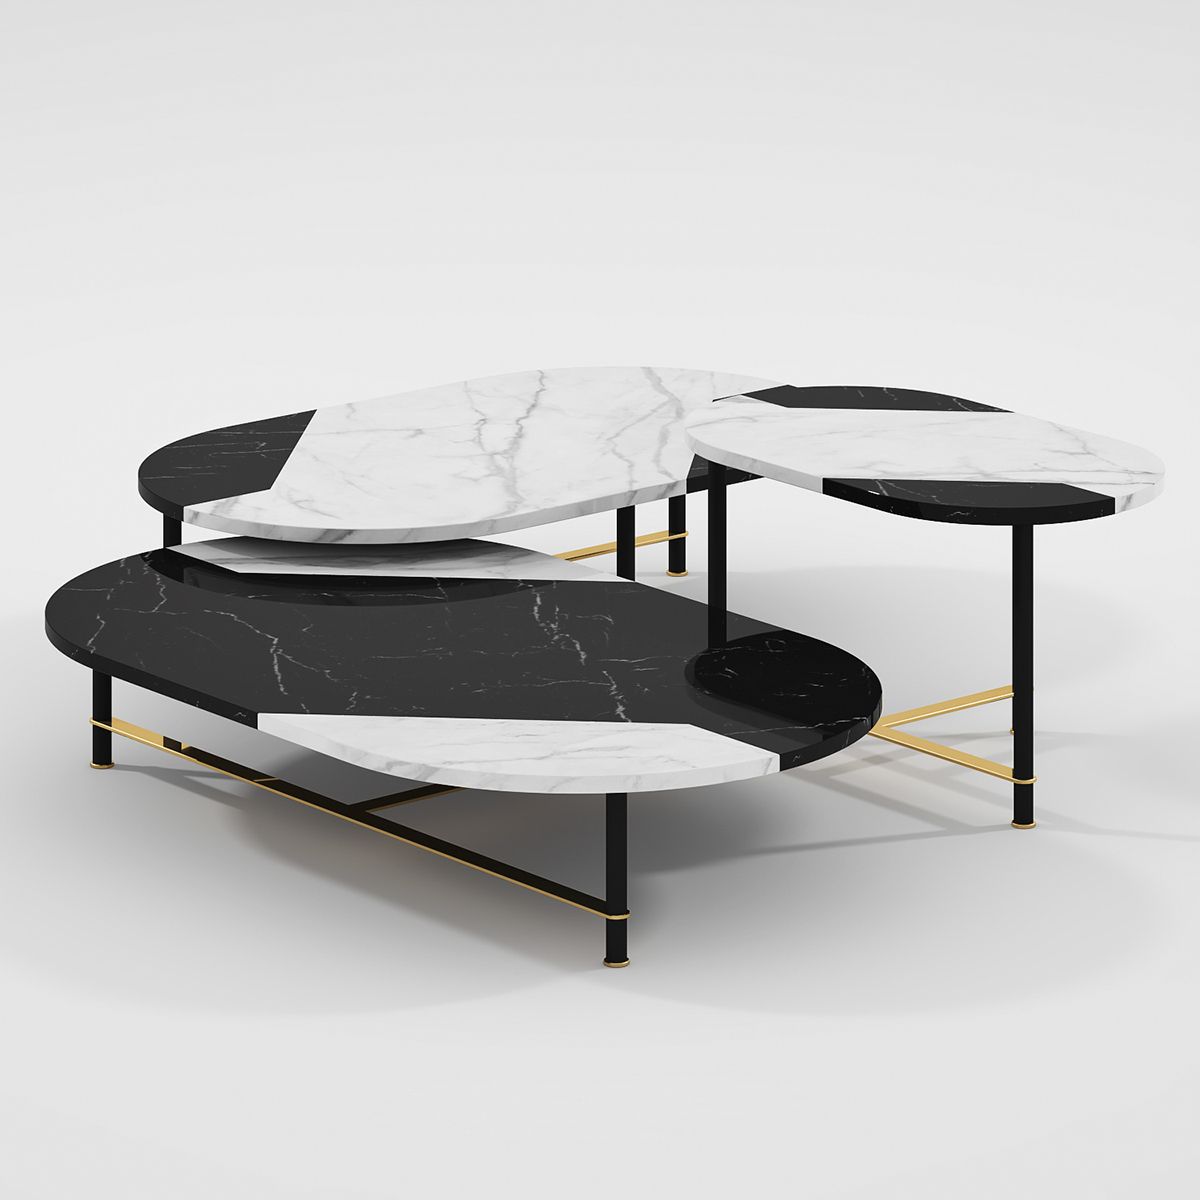 Sofa Set Images Free Download Free 3d Model Gallotti Radice Sofa Set On Behance